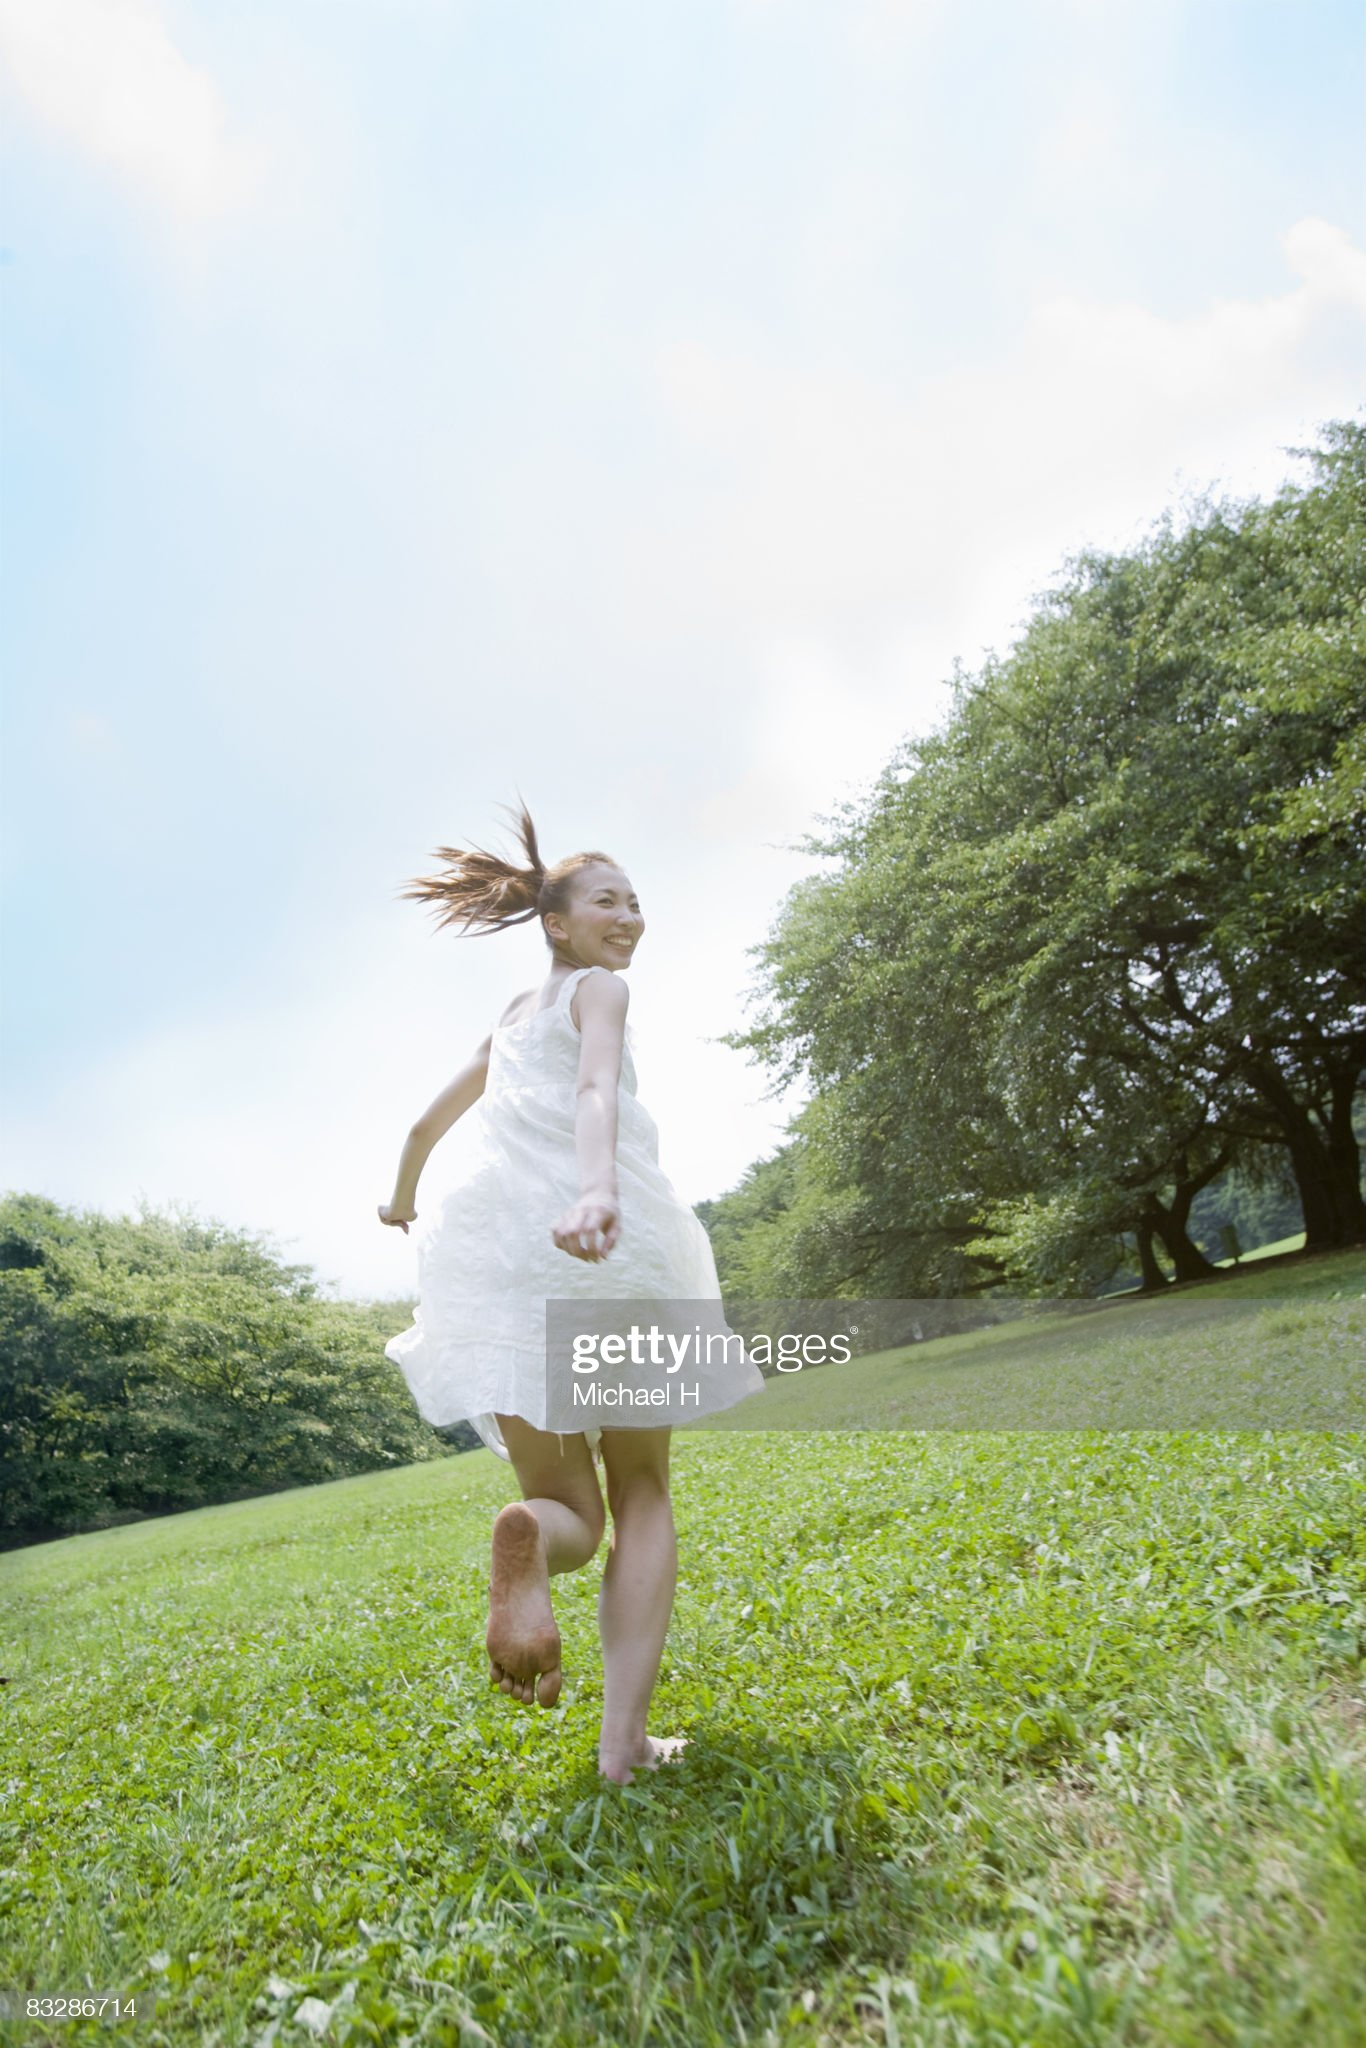 https://media.gettyimages.com/photos/the-woman-who-runs-barefoot-picture-id83286714?s=2048x2048